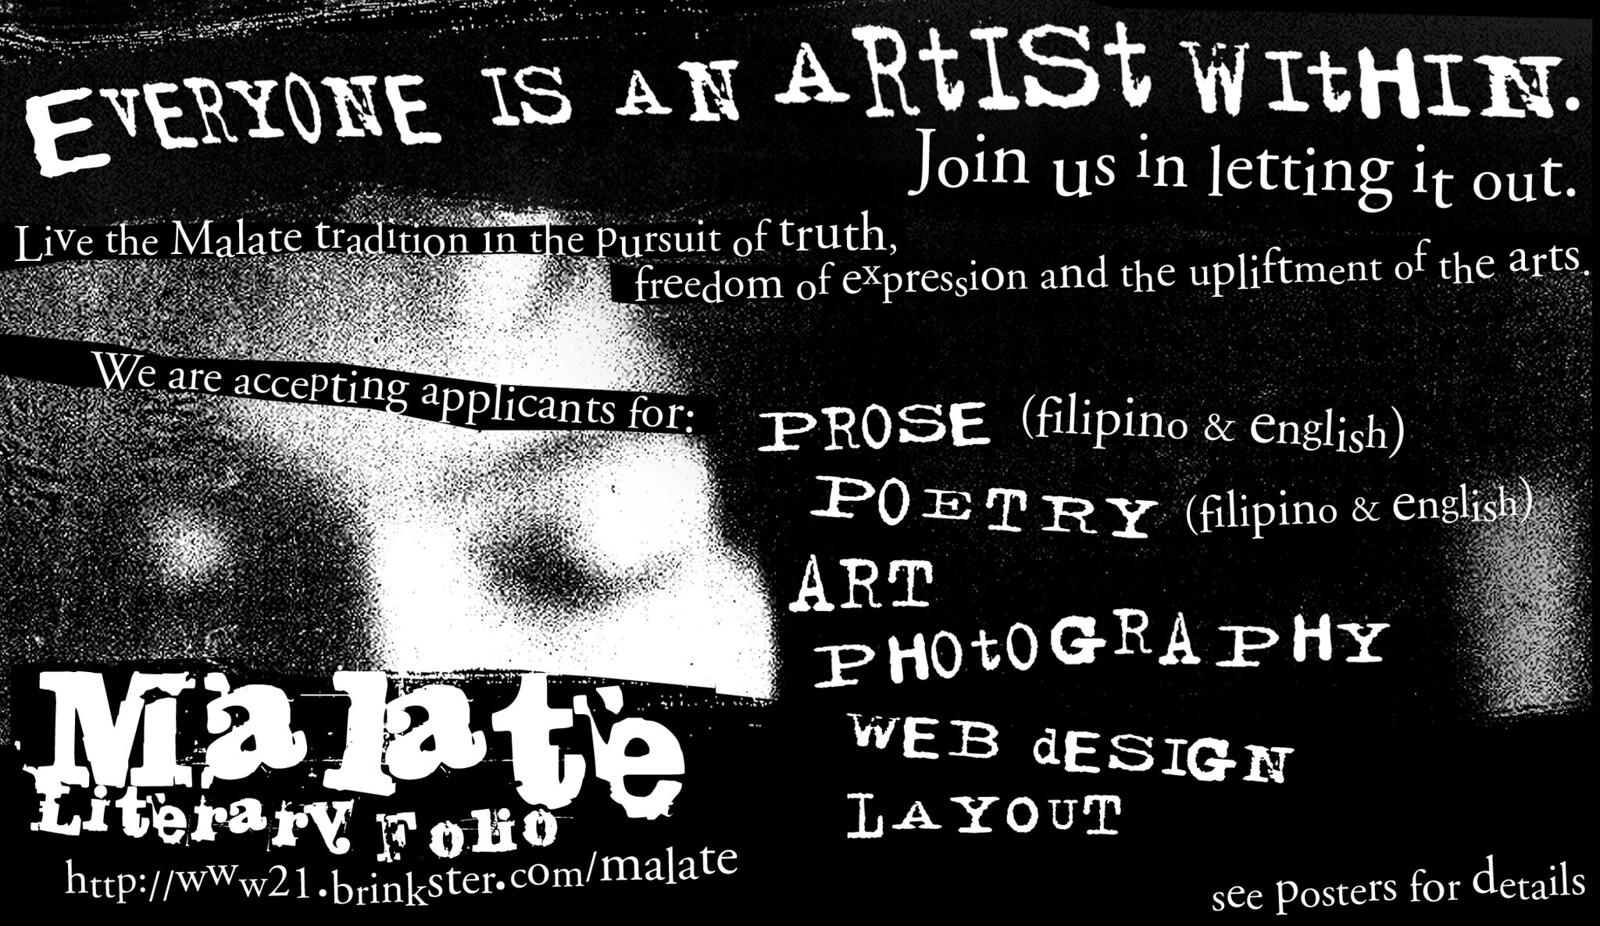 Malate Literary Folio - Recruitment Flyer 2002